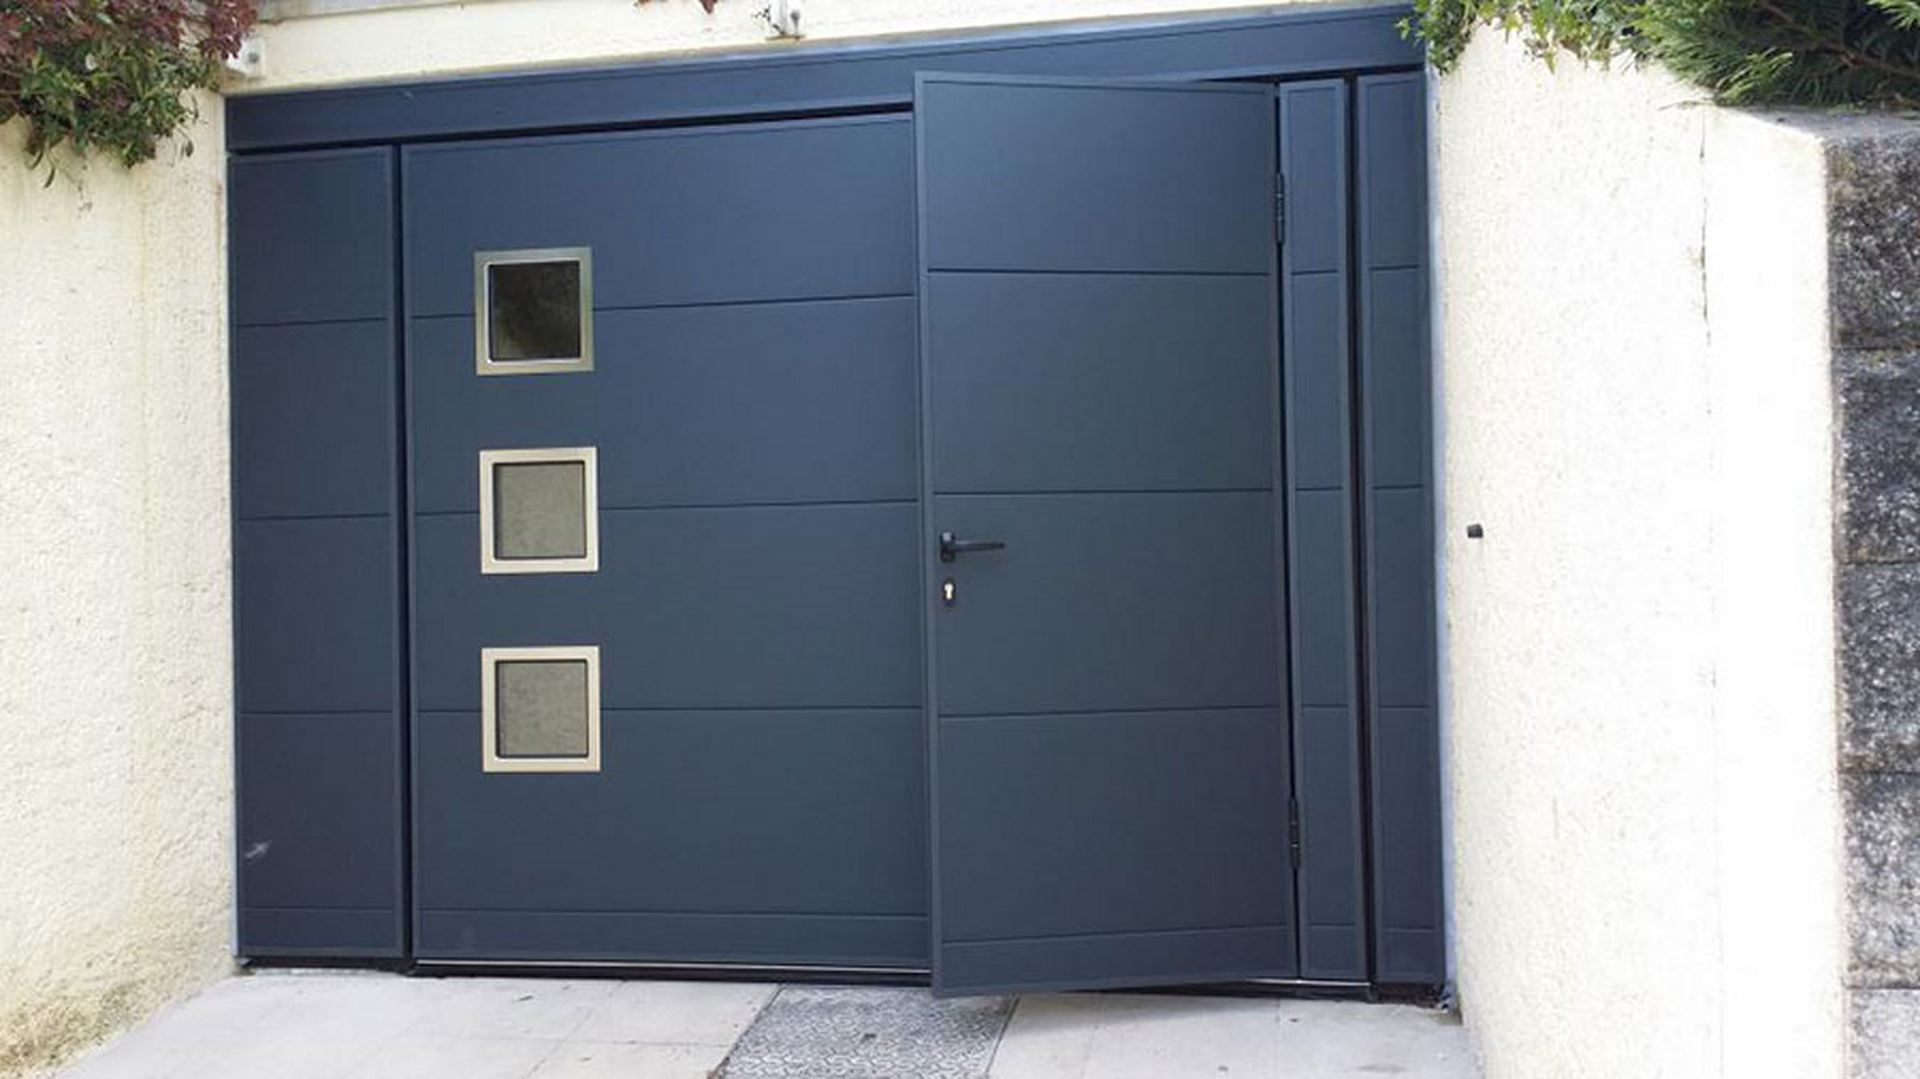 Combien co te une installation de porte de garage abc - Pose de porte de garage coulissante ...